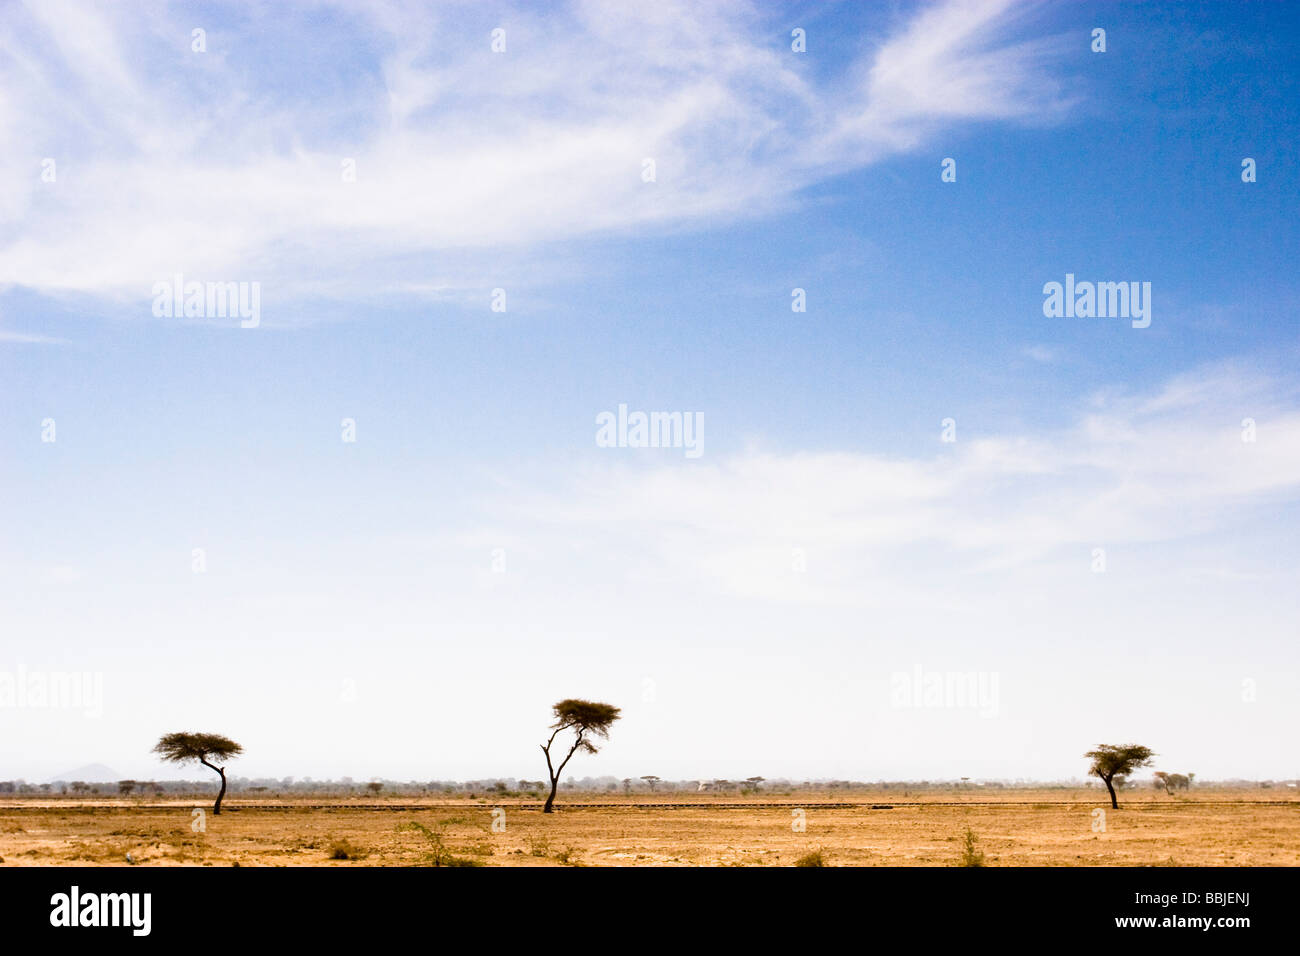 Ethiopia; Scenic view of lone trees on plain - Stock Image